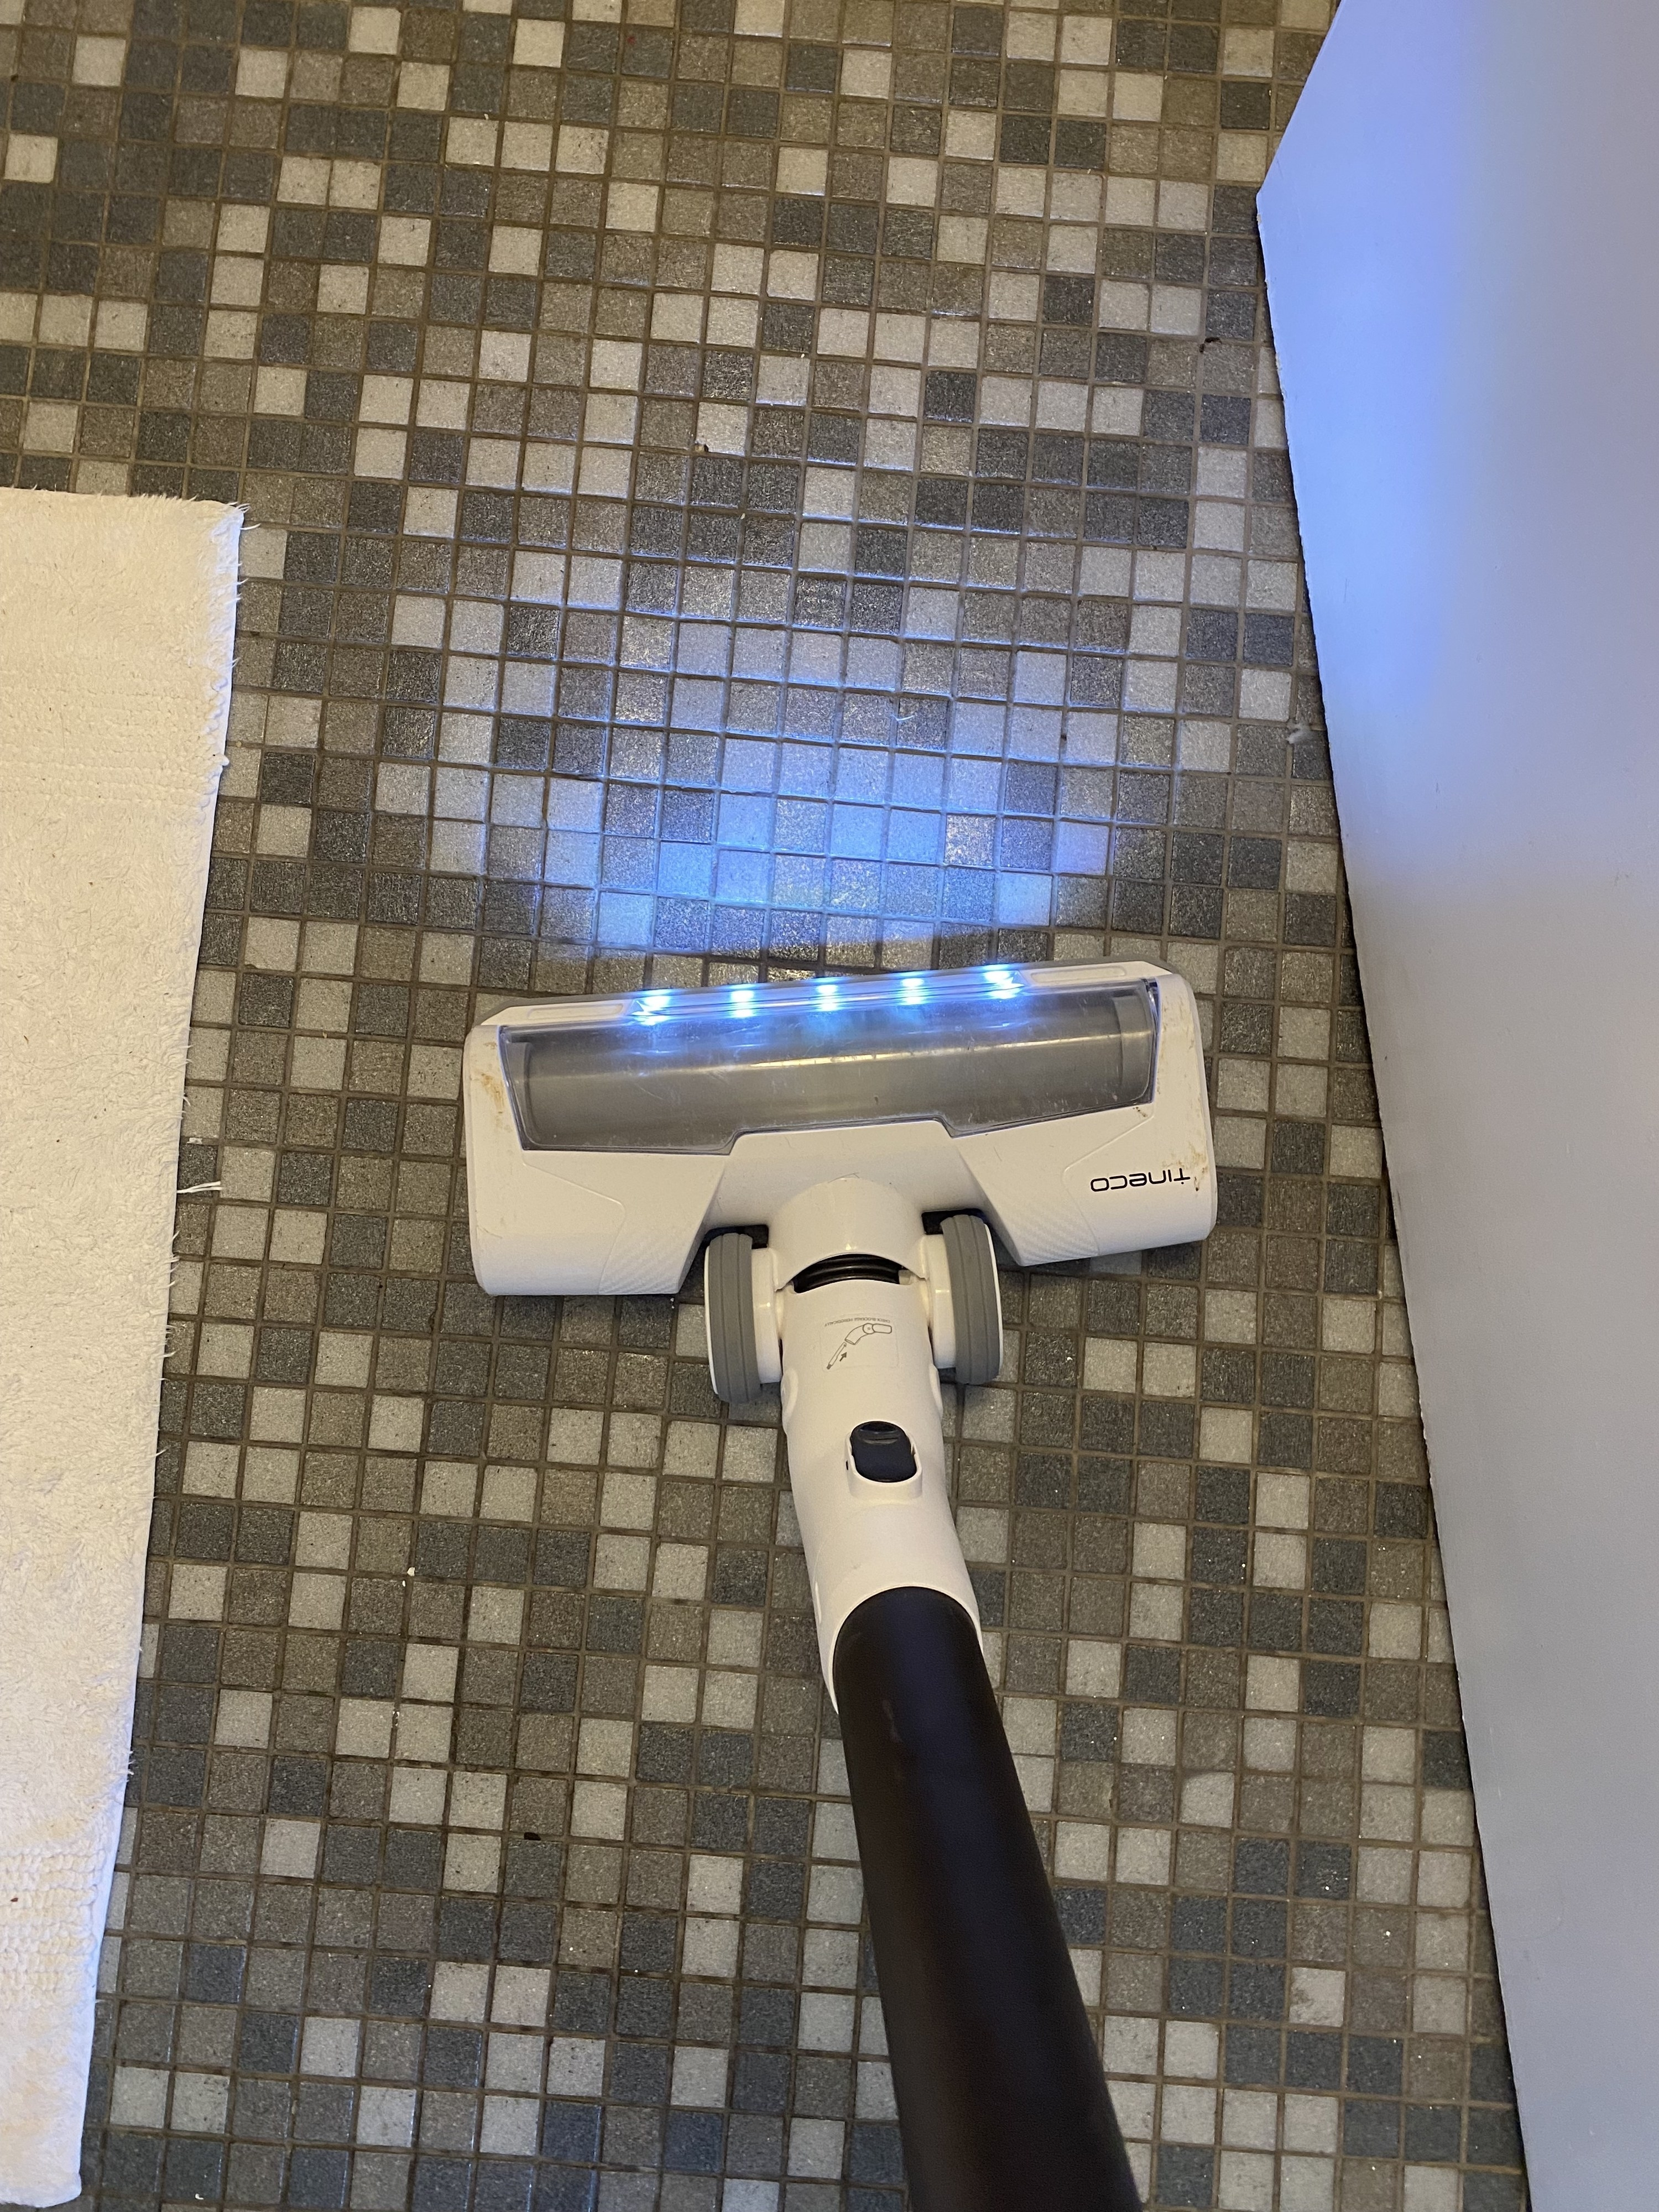 the Tineco being used on a tile bathroom floor